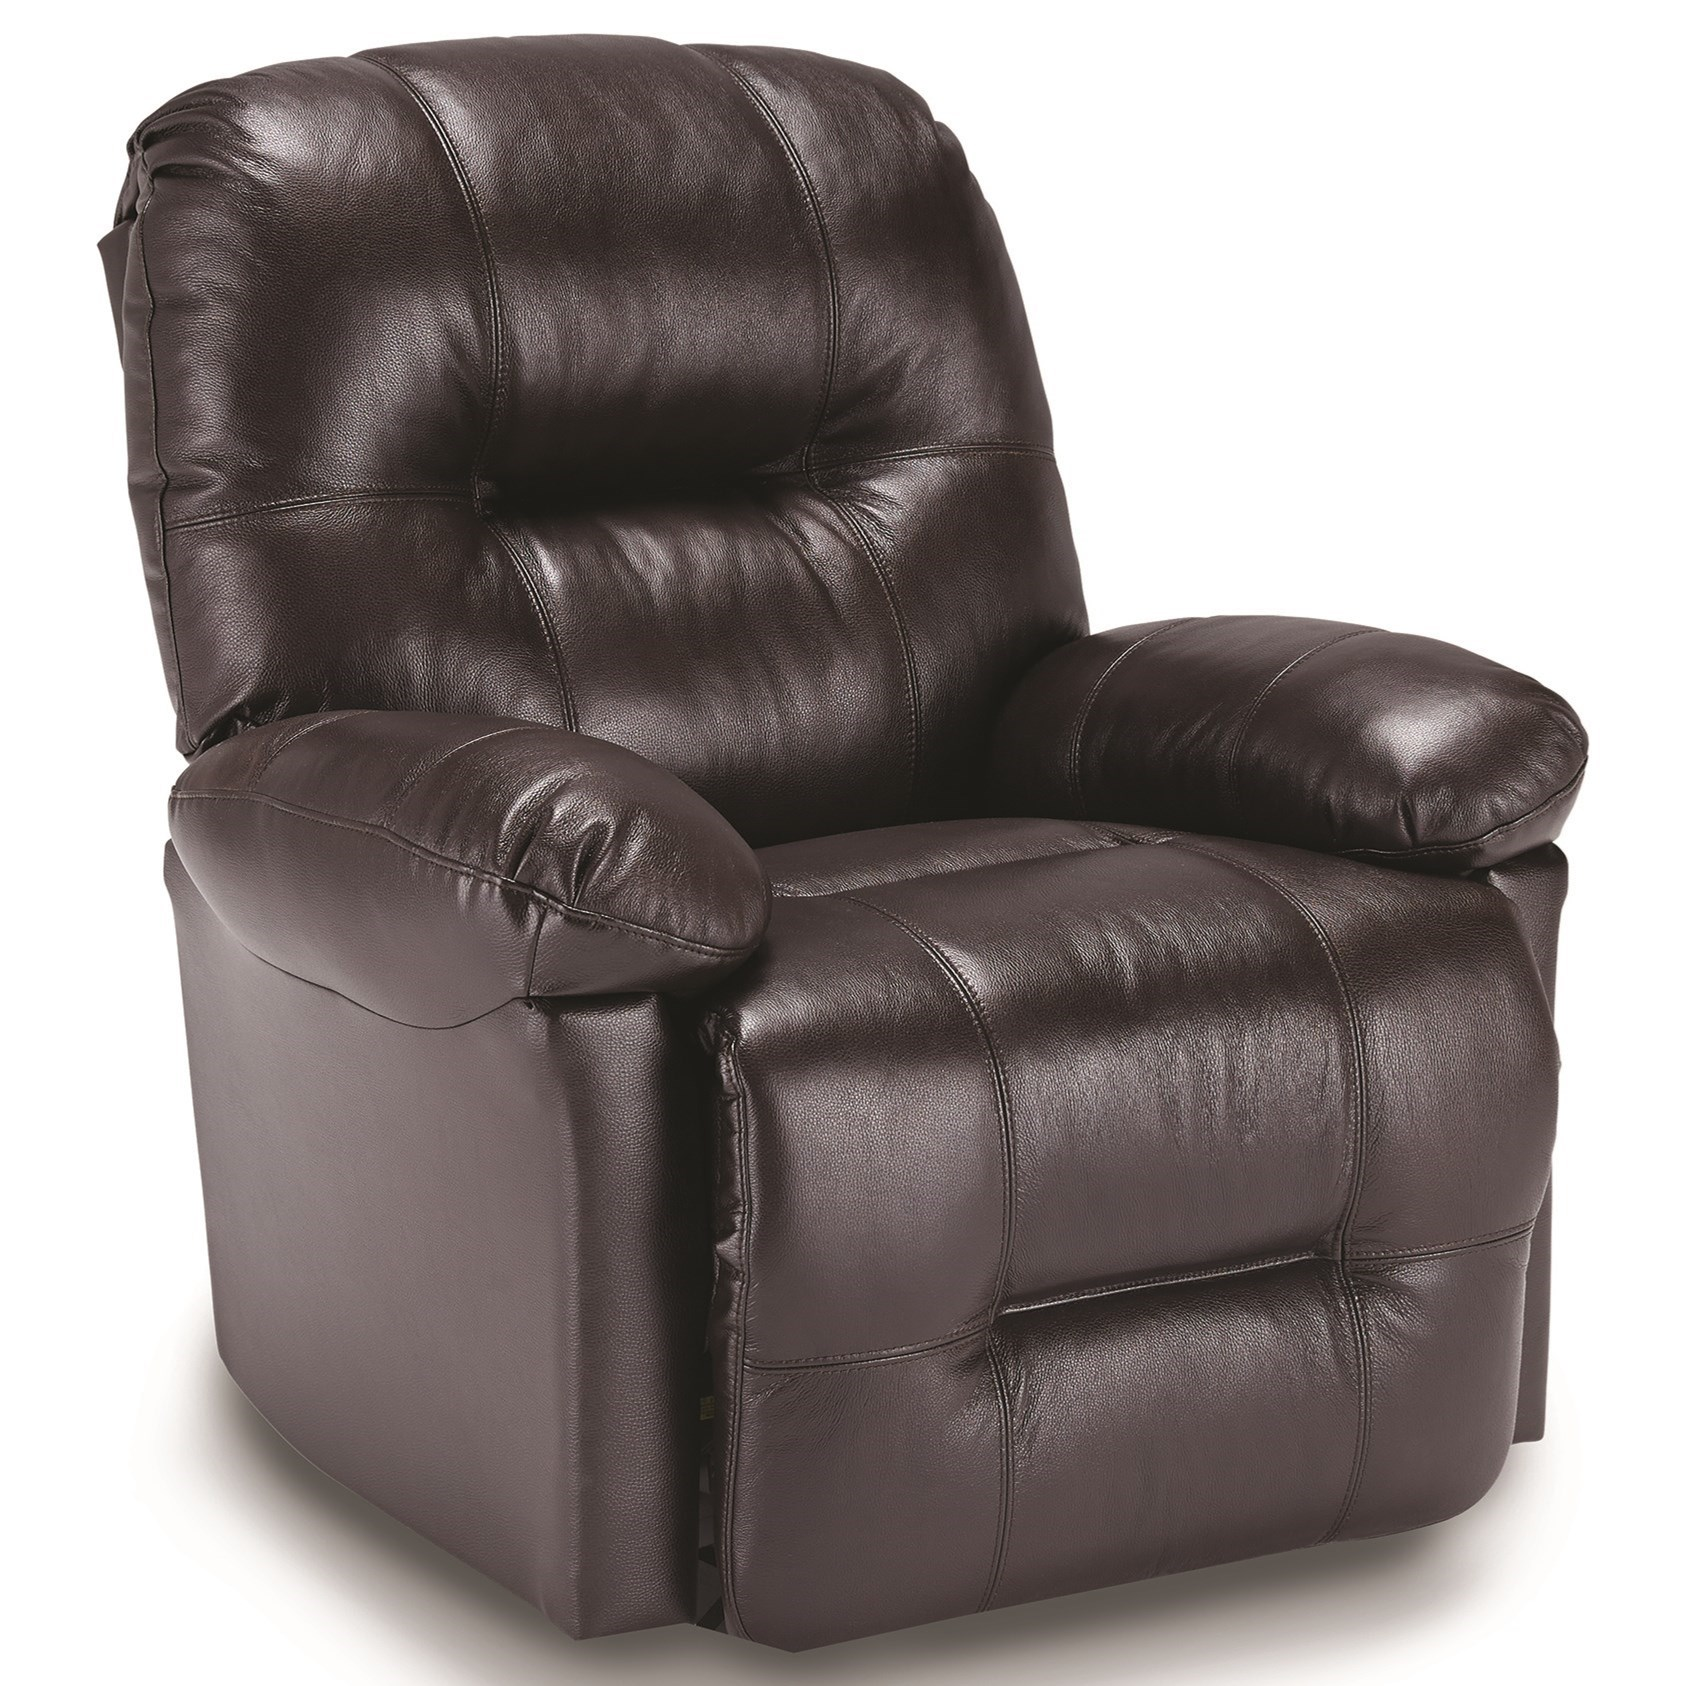 S501 Zaynah Power Wallhugger Recliner by Best Home Furnishings at Best Home Furnishings